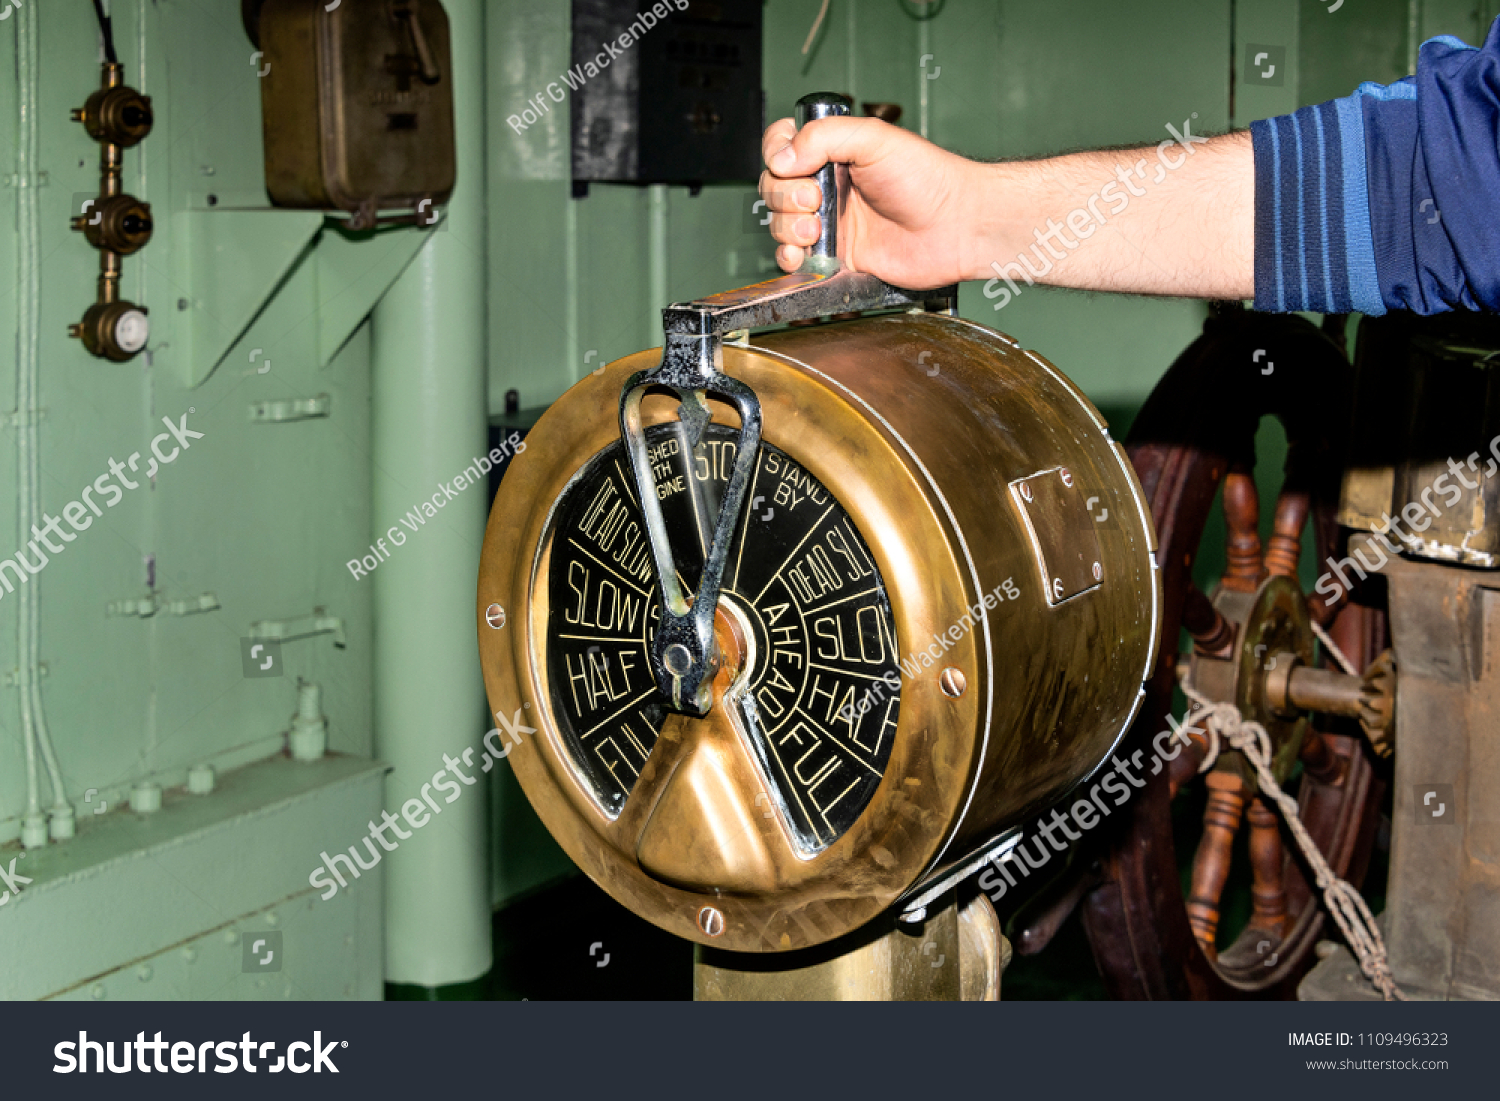 Where to hand over the old equipment